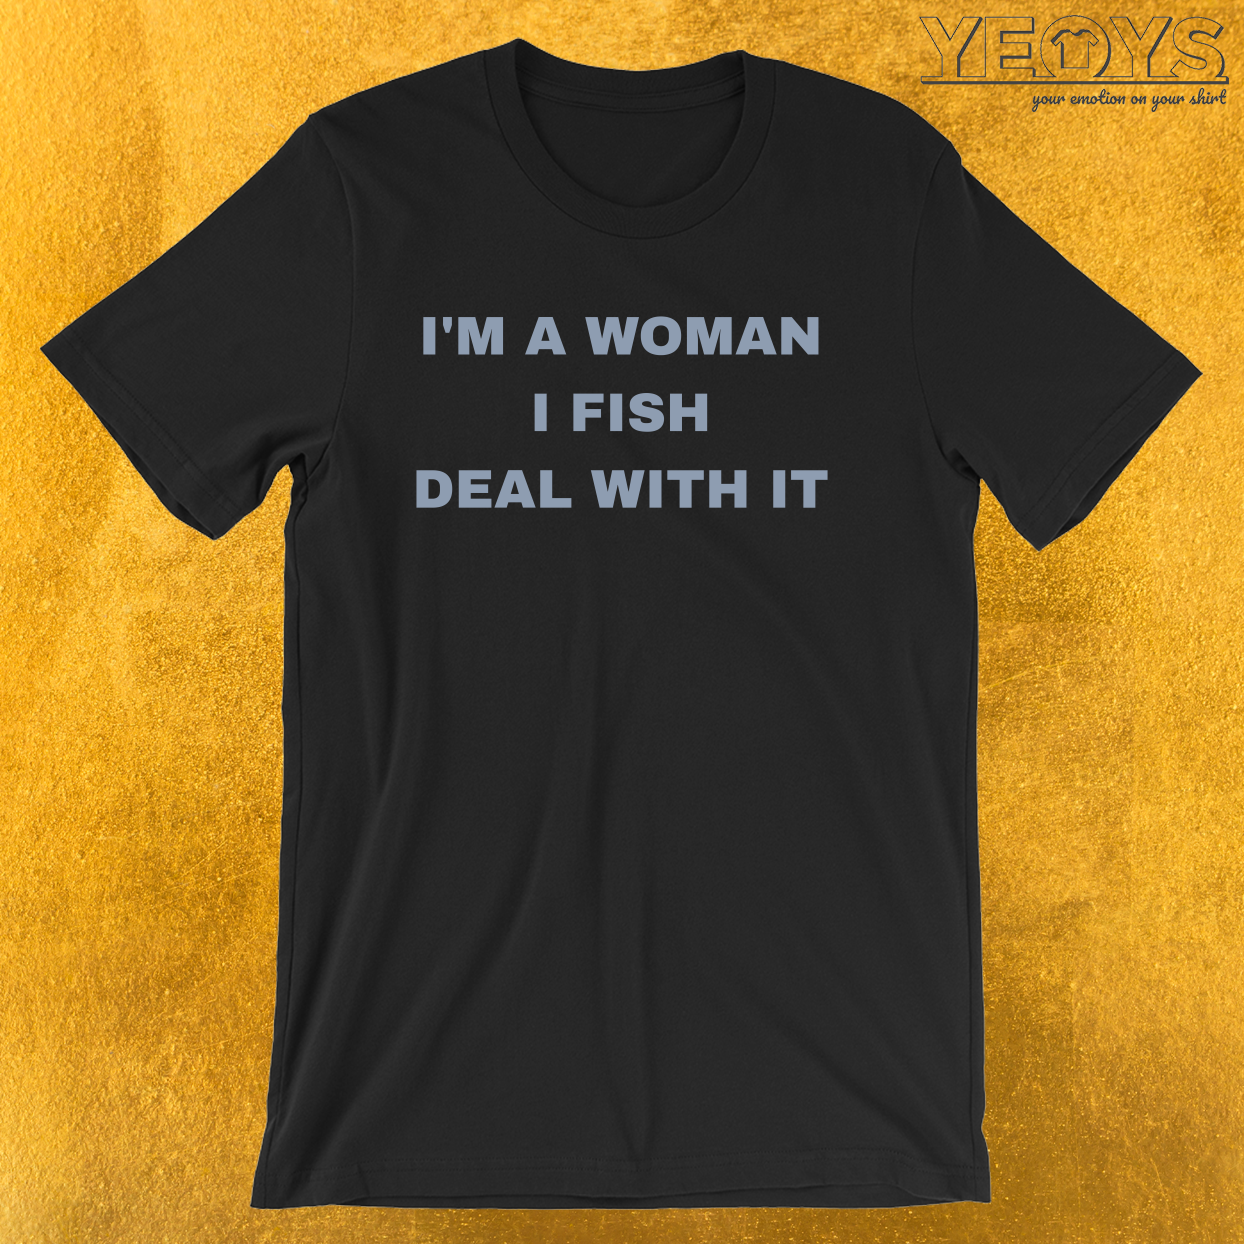 I'm A Woman I Fish Deal With It – Girl & Woman Fishing Tee